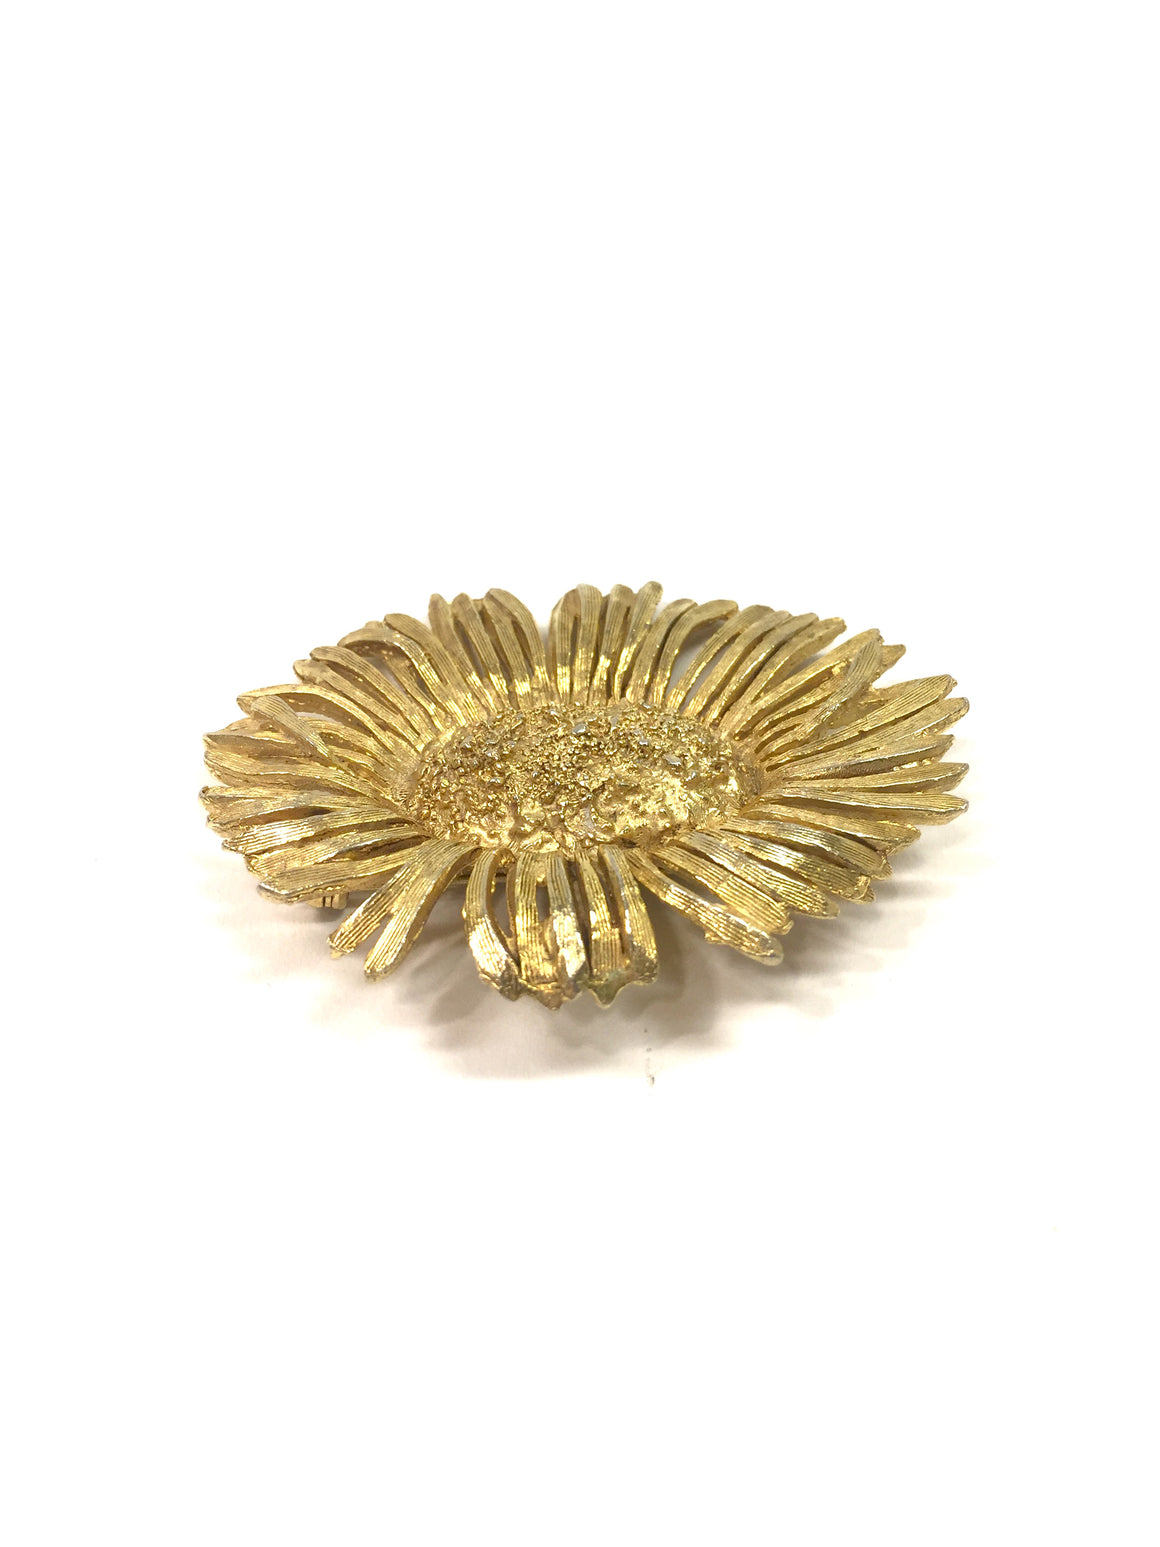 Vintage JUDITH GREN Gilt Metal Stylized Textured Flower Pin Brooch/Pendant